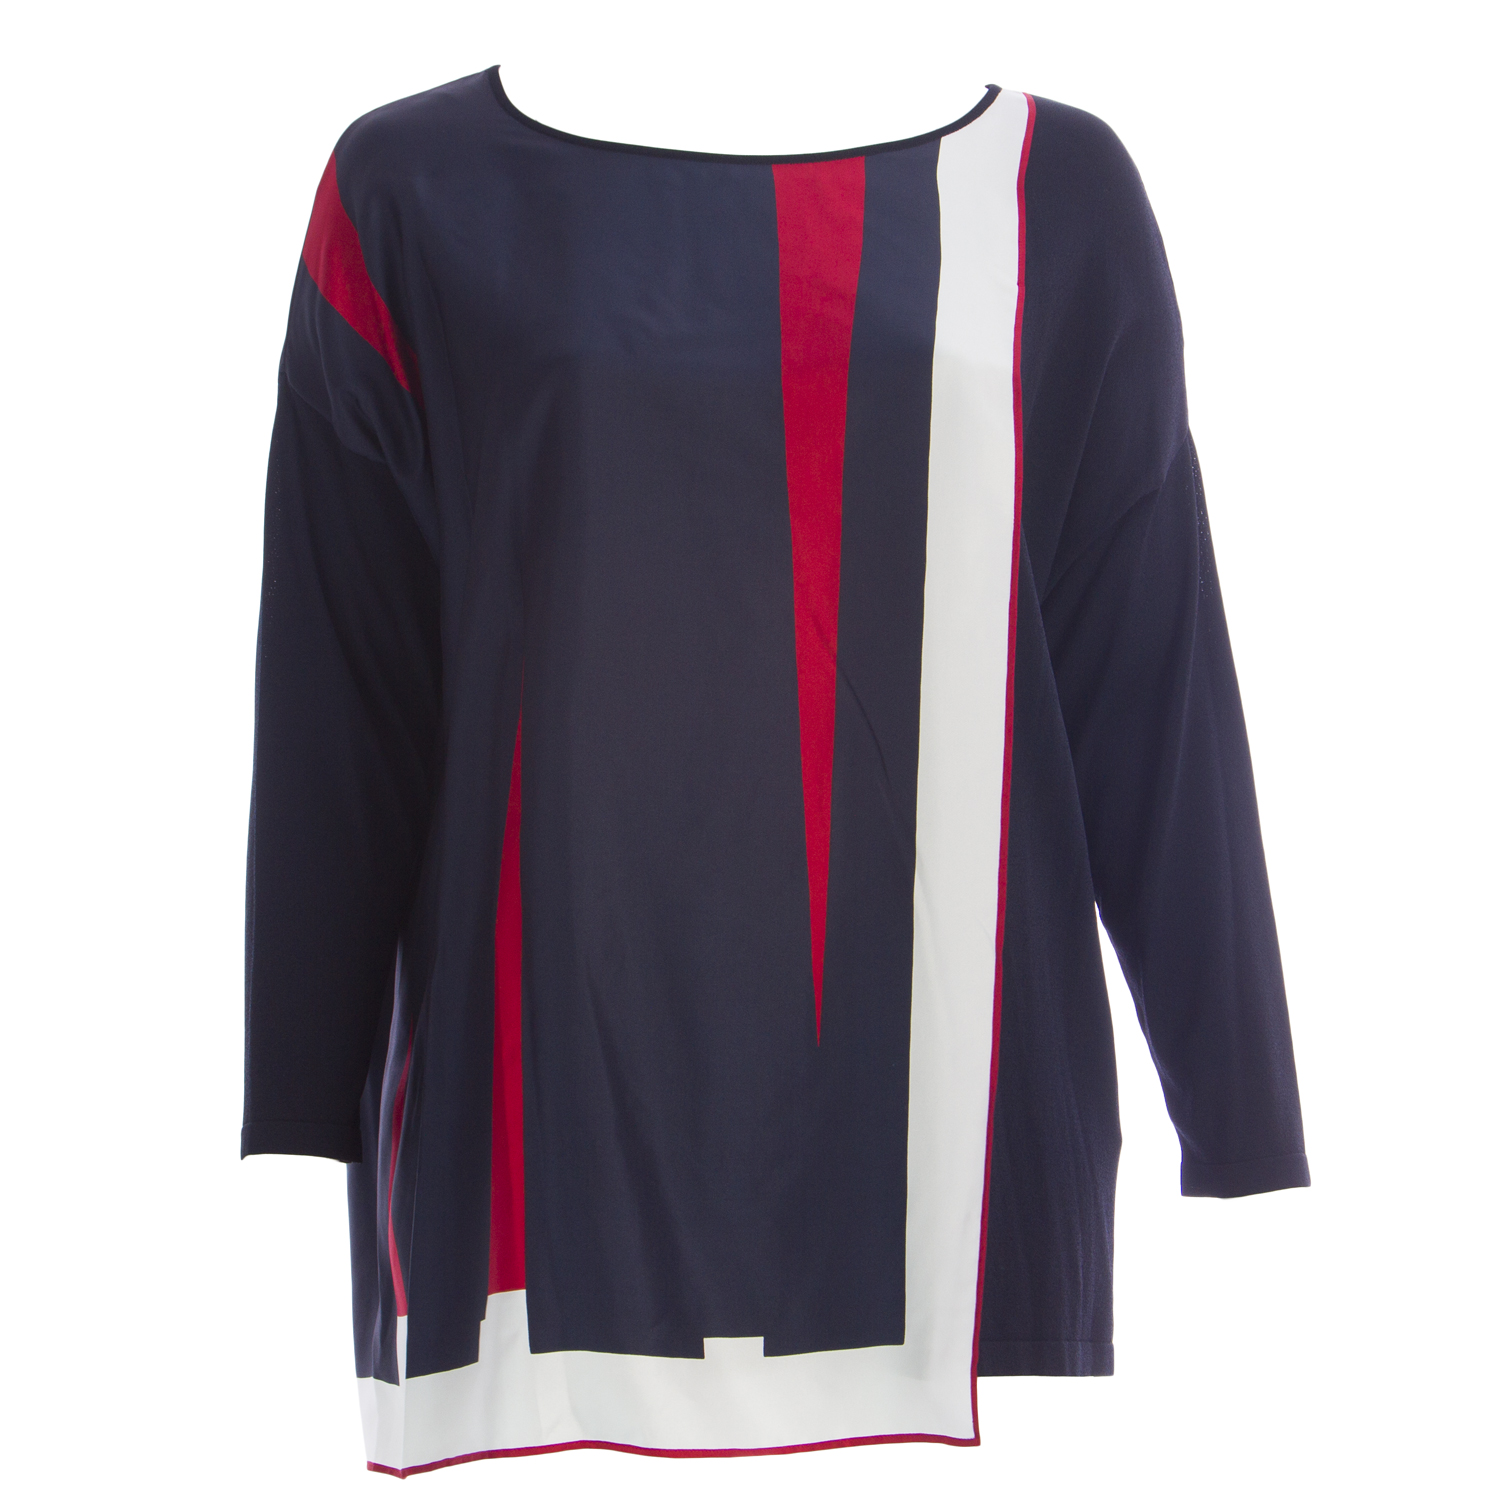 MARINA RINALDI Women/'s Navy Arte Silk Panel Sweater $745 NWT